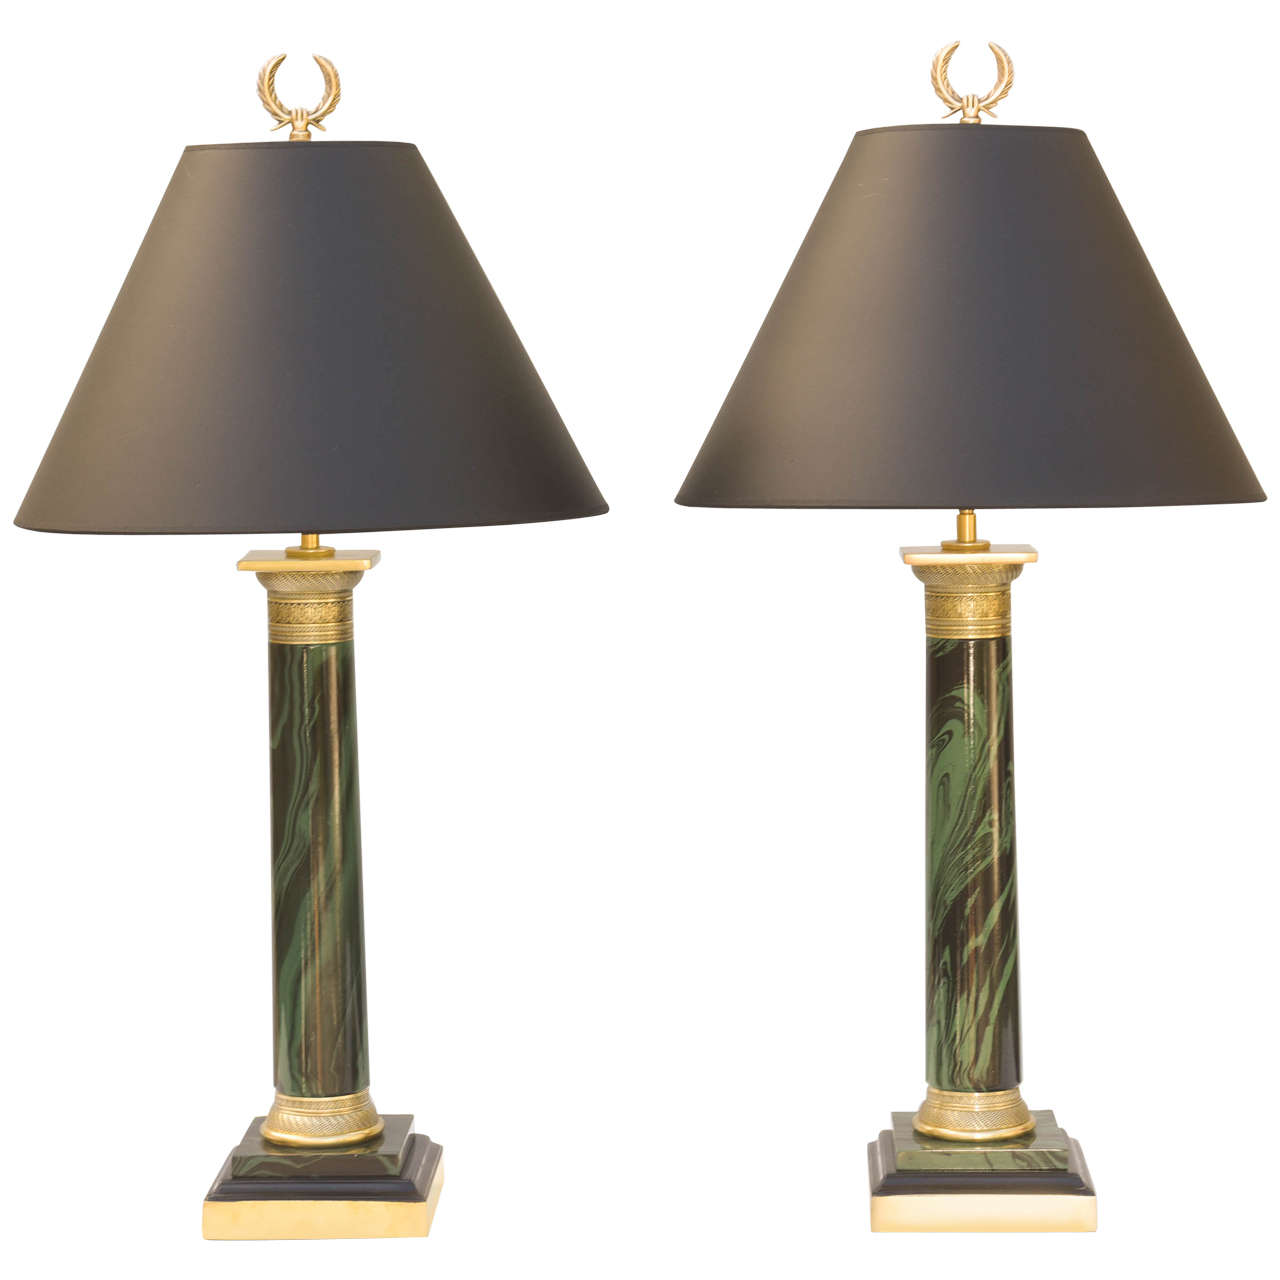 Pair of Faux Malachite Lamps by Paul Hansen